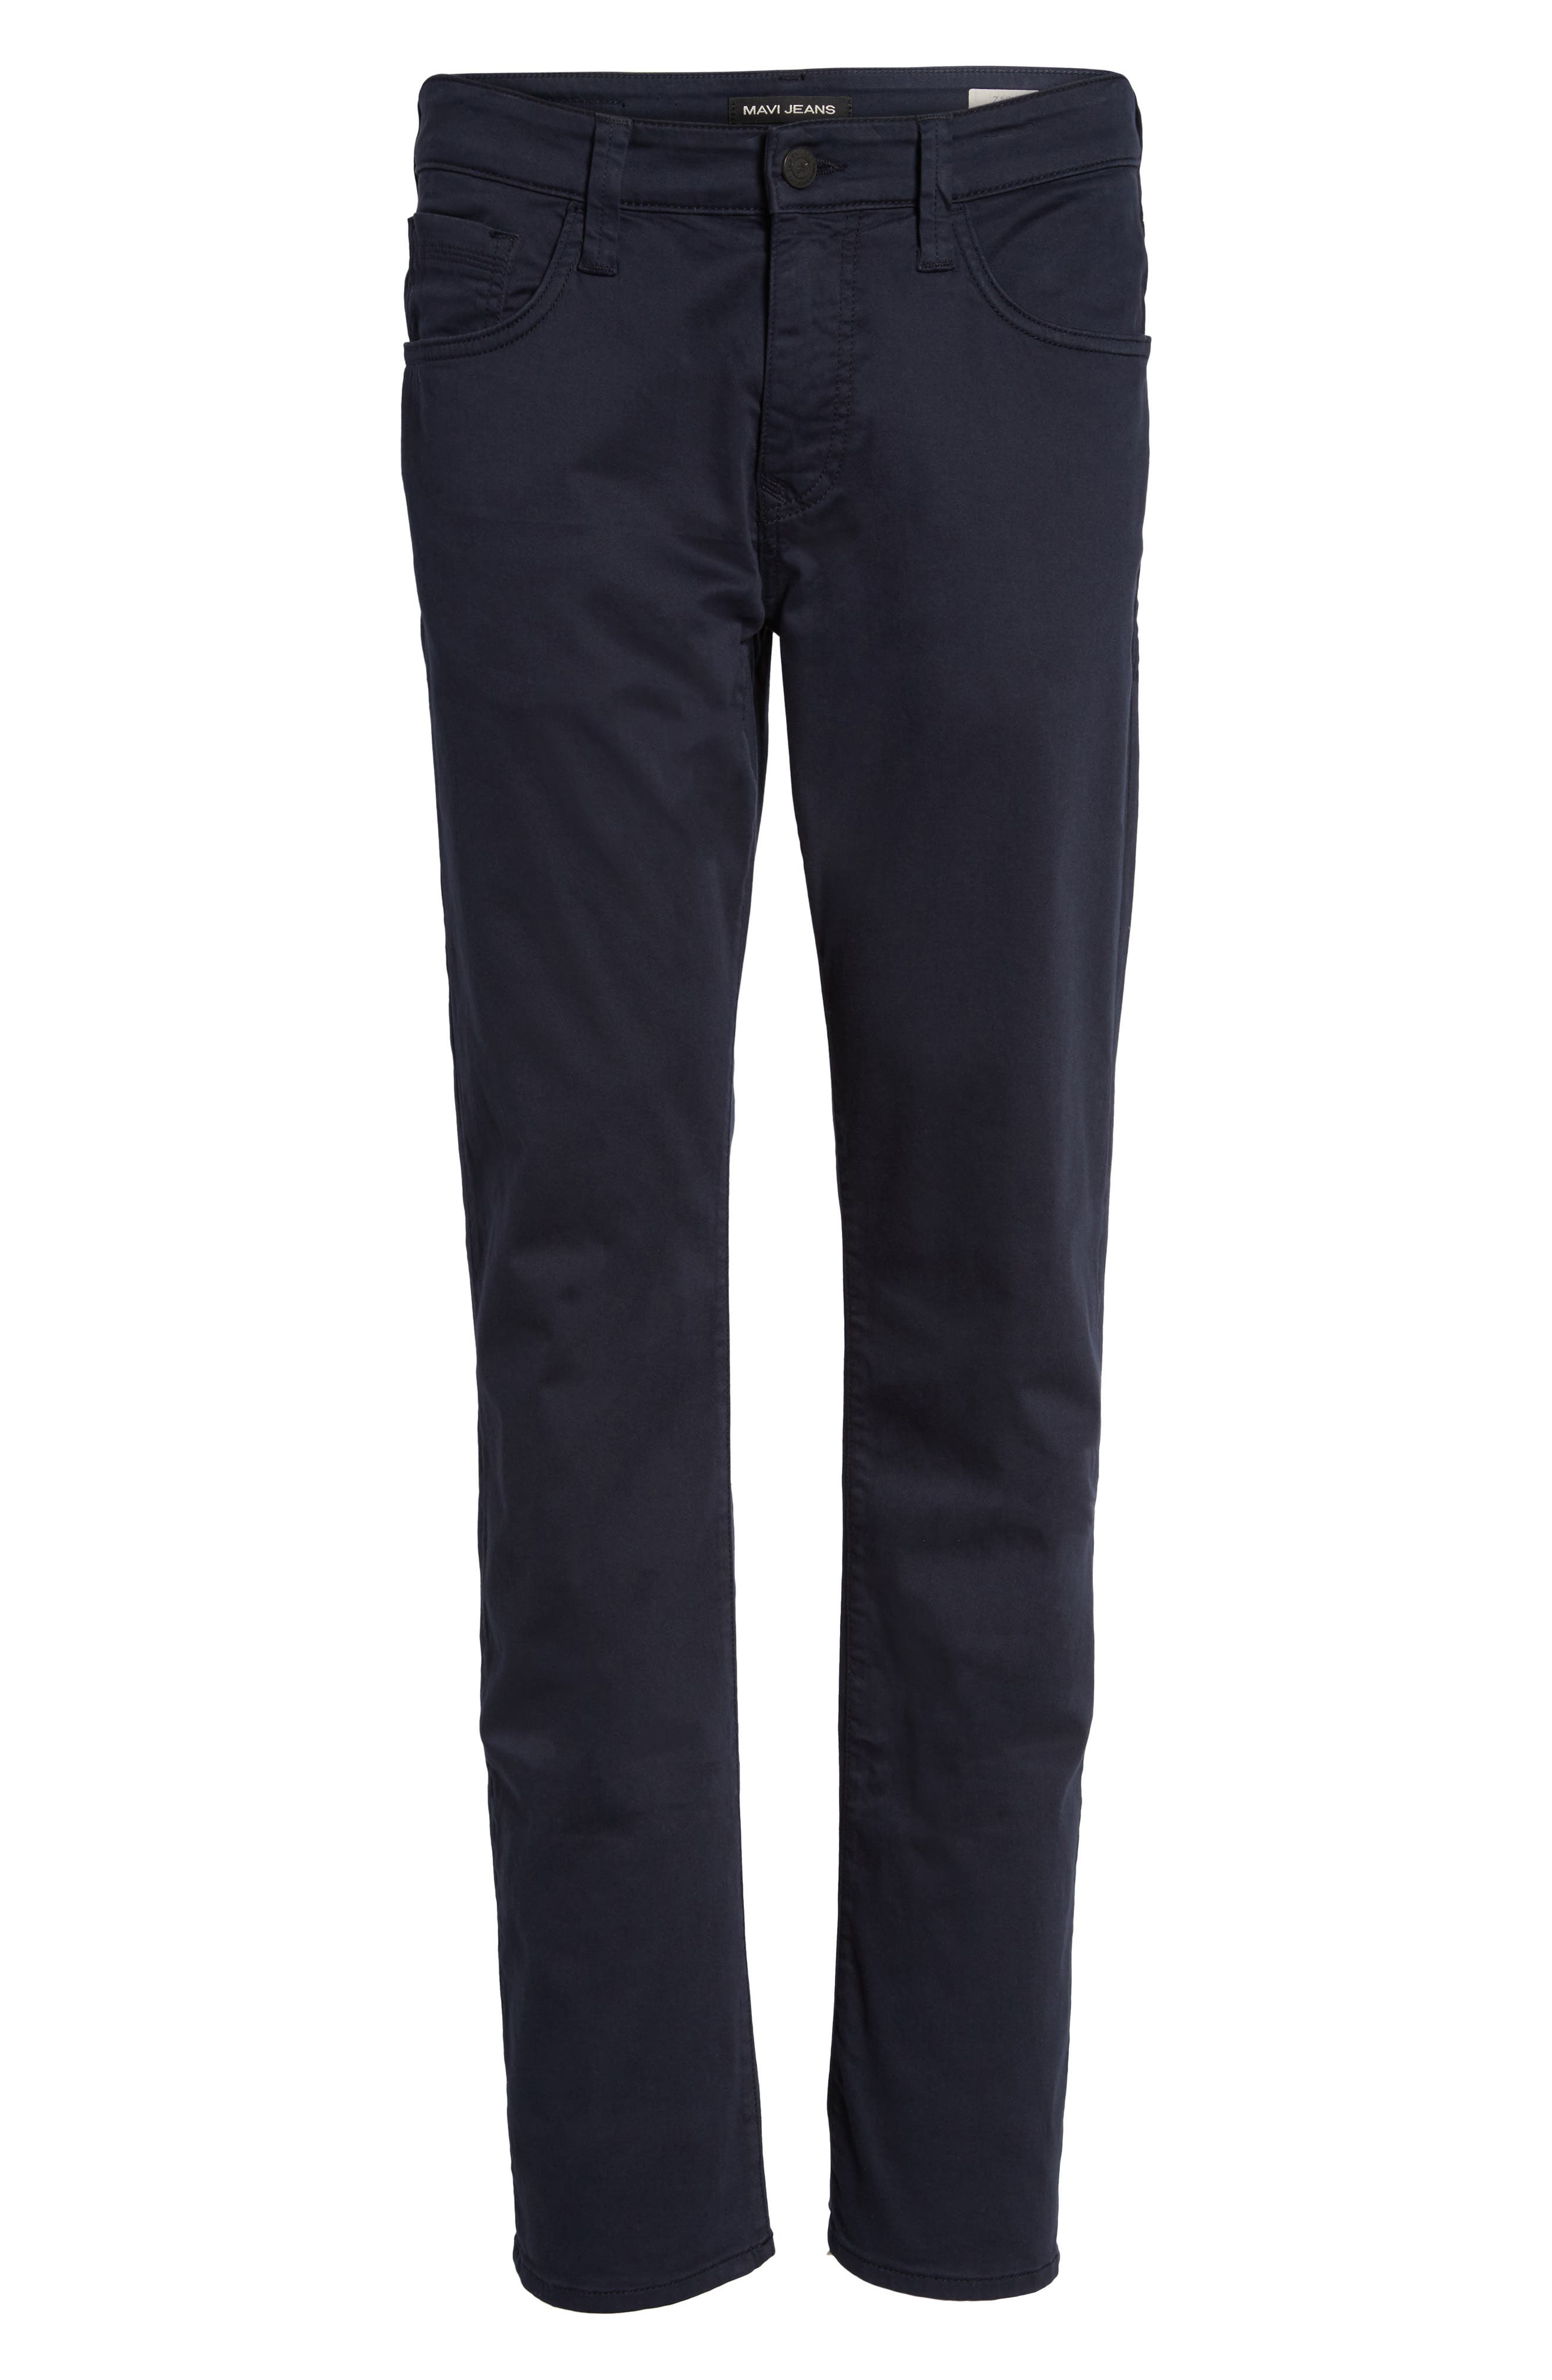 Zach Straight Fit Twill Pants,                             Alternate thumbnail 6, color,                             Dark Navy Twill